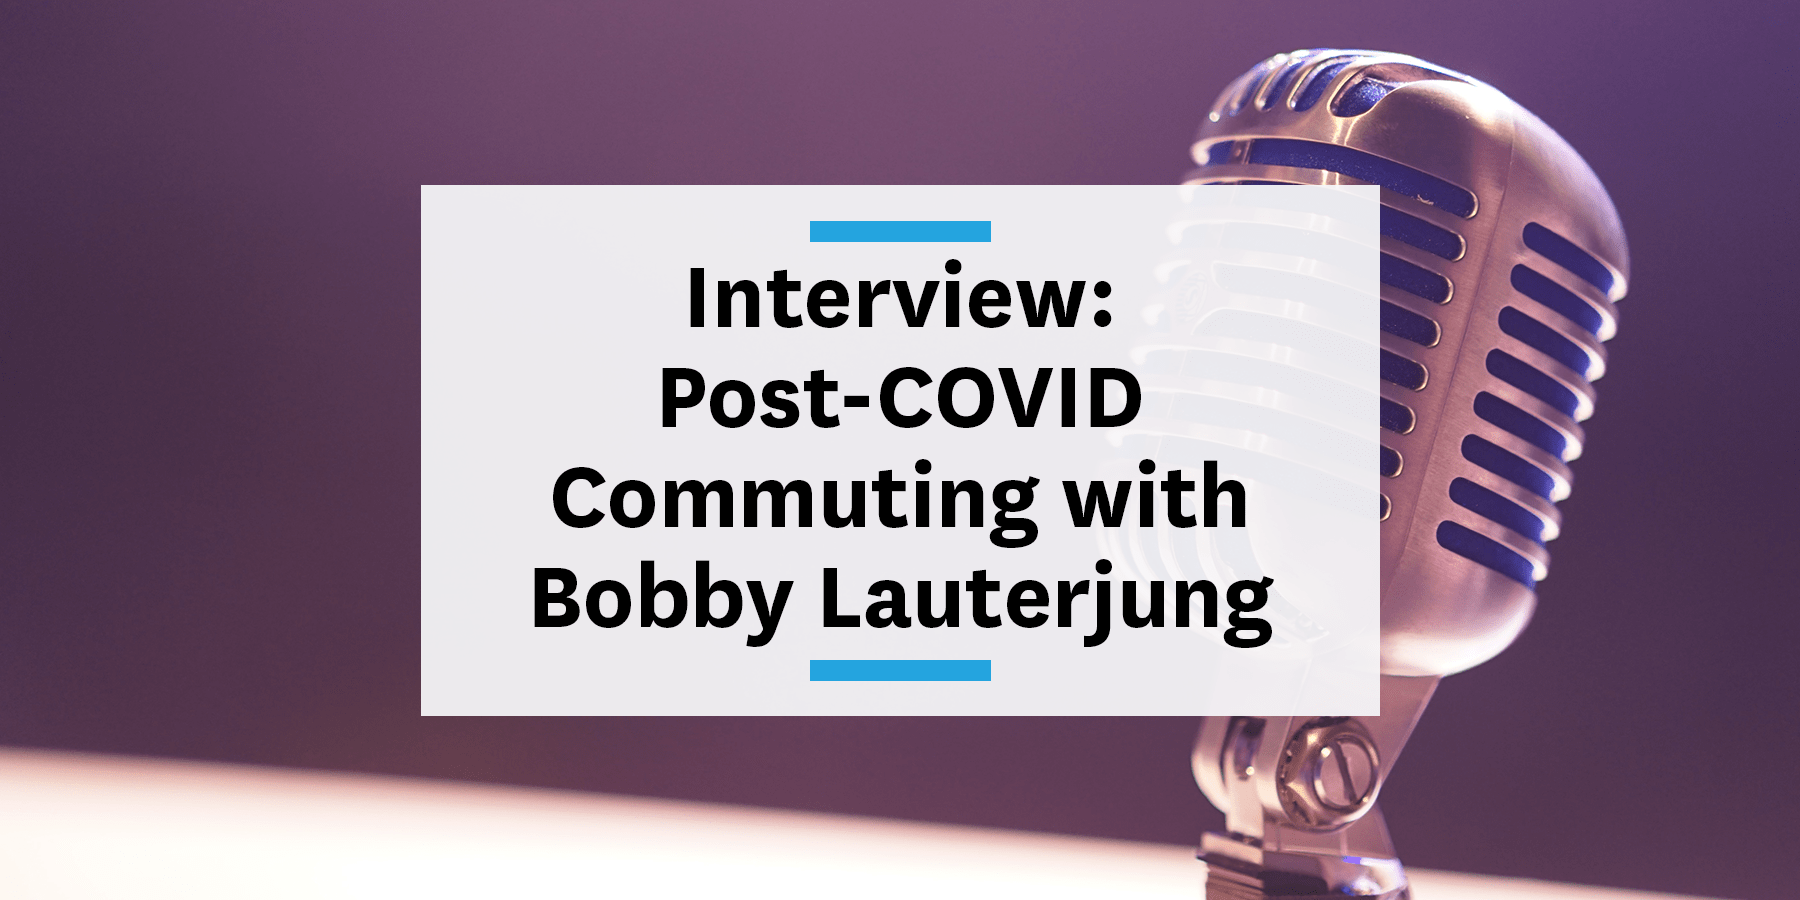 Feature image for interview of post-covid commuting with Bobby Lauterjung